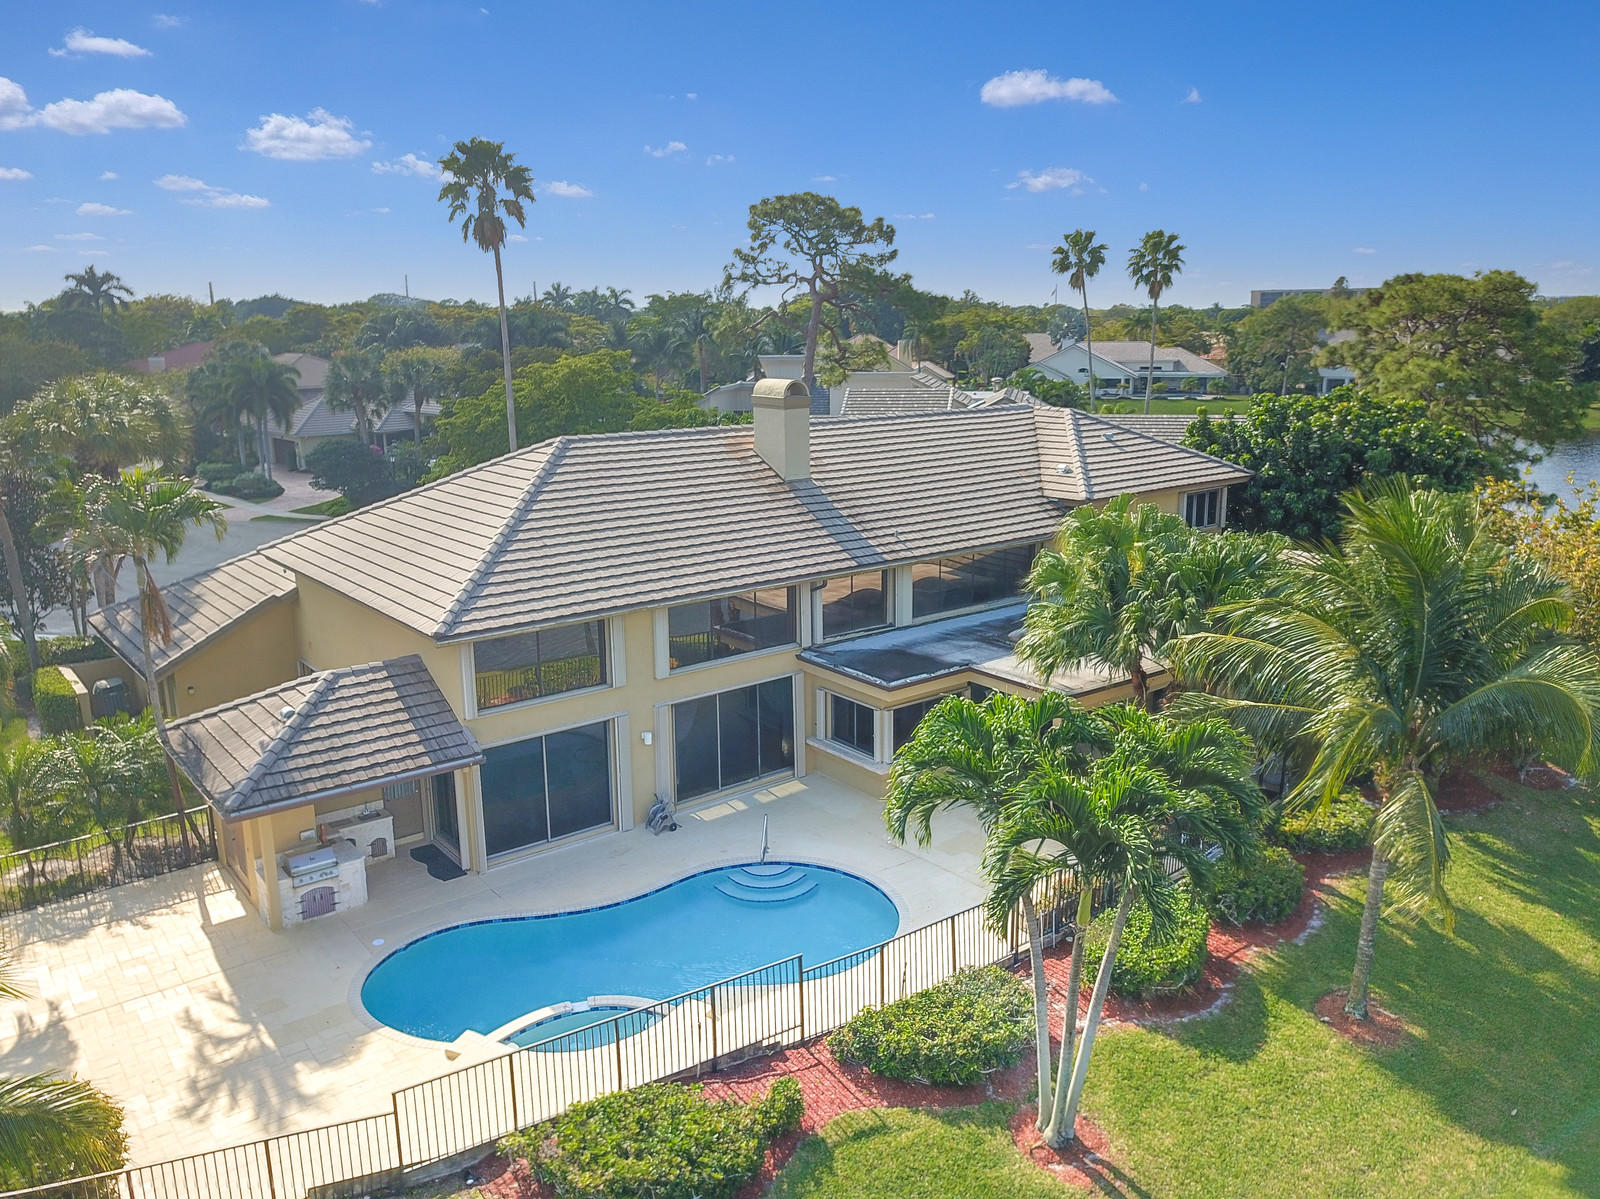 Boca Raton: Woodfield Hunt Club - listed at 1,095,000 (3075 Windsor Pl)